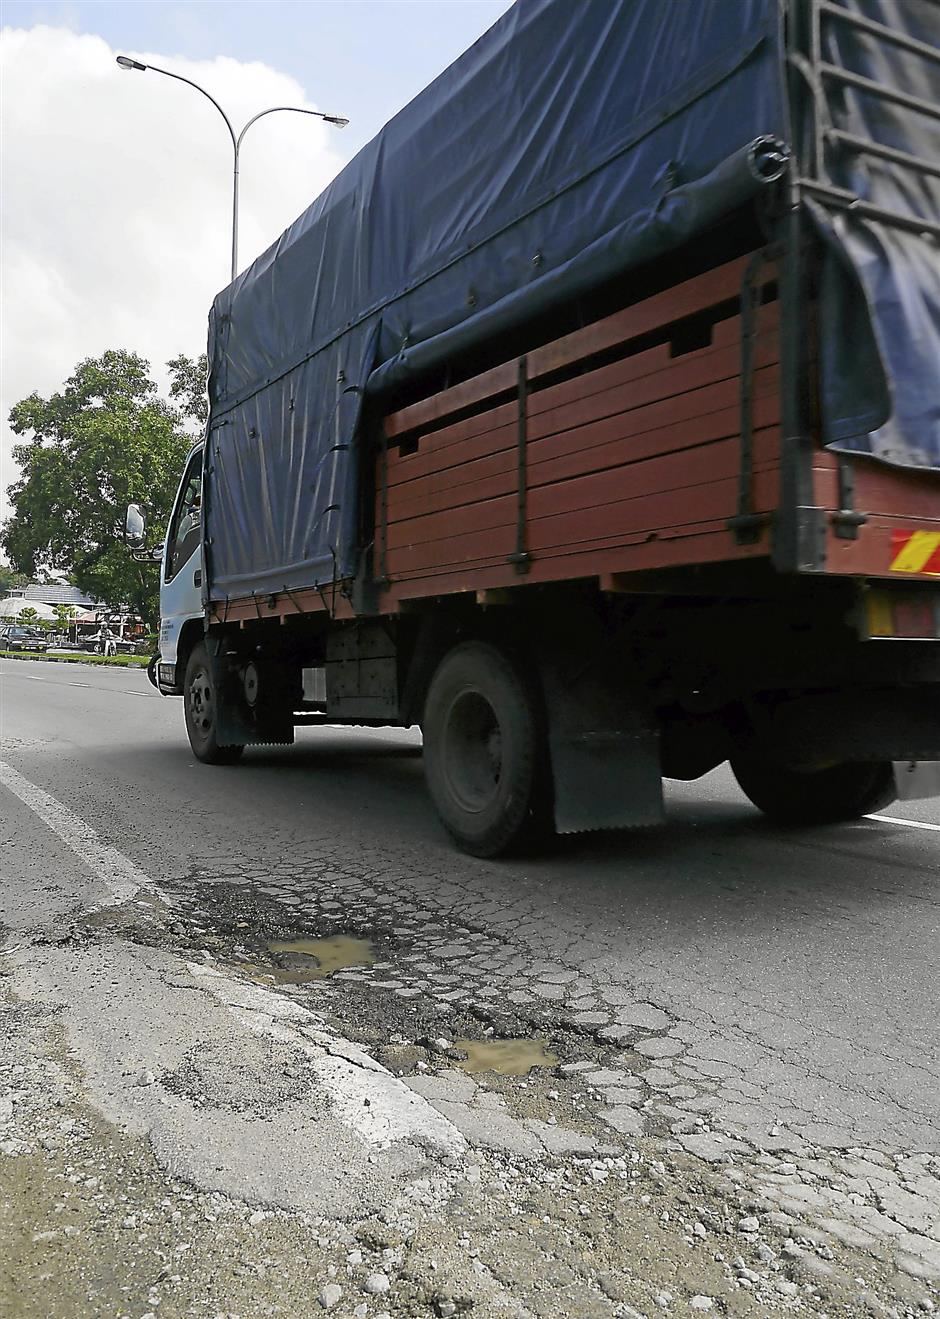 Residents say cracks and potholes reappear on Jalan